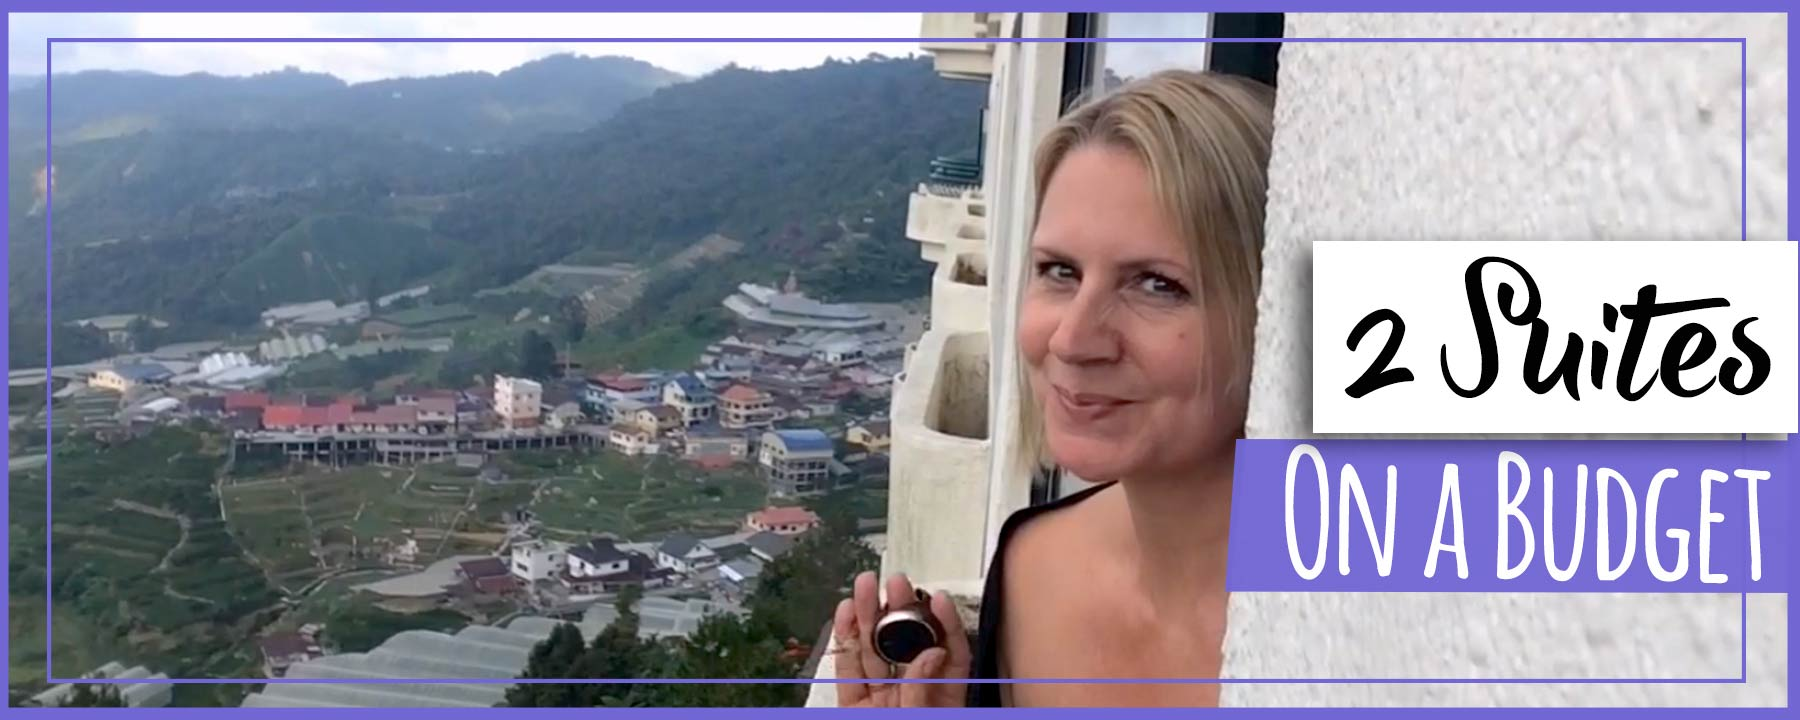 Cameron Highlands | 2 Best Cheap Hotel Suites on a Budget